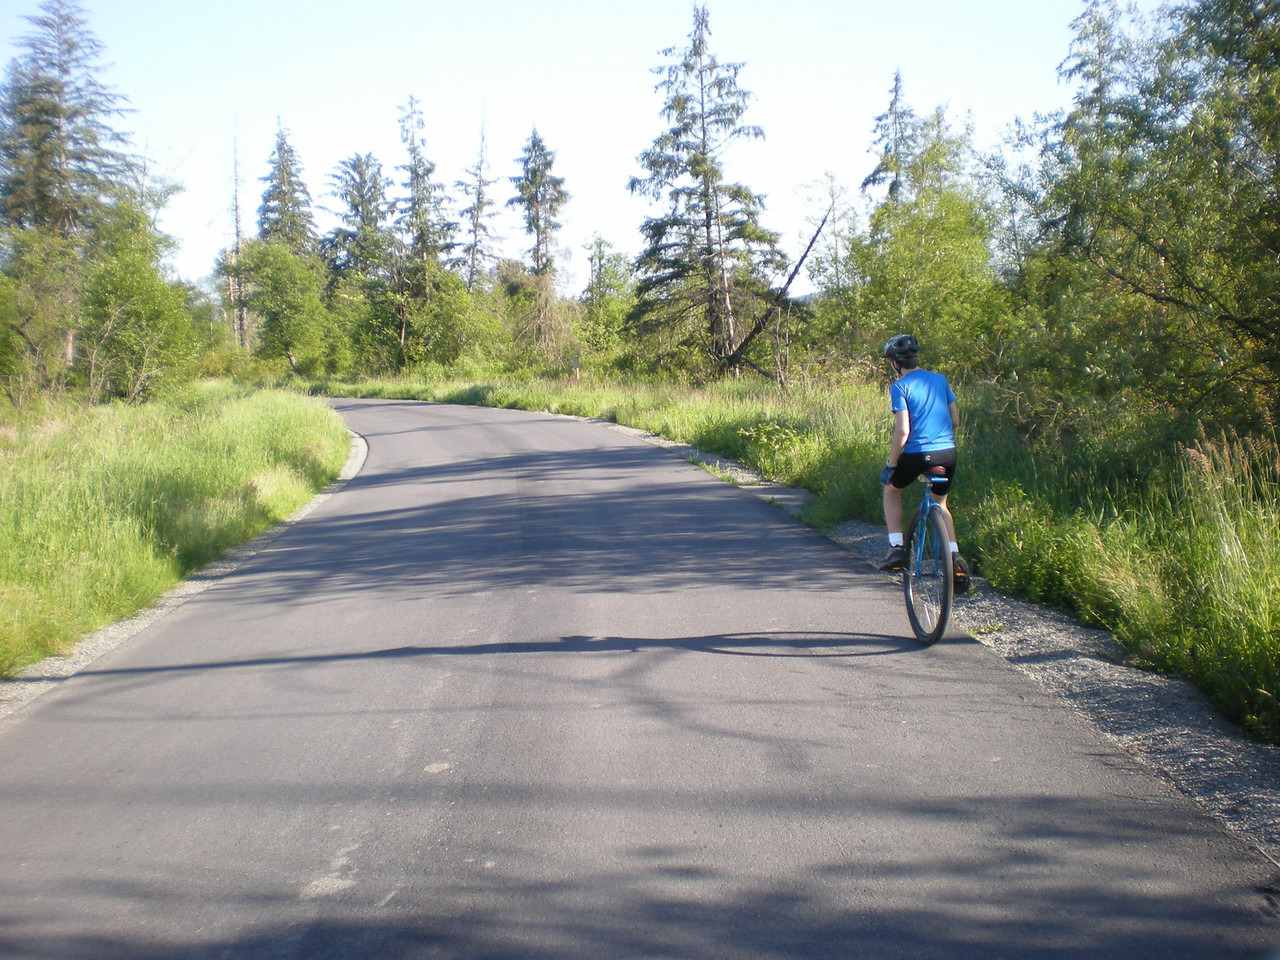 2008:  Miles on the Snoqualmie River Road.  For context, check out a photo at the link below, of me riding in this same spot less than a month earlier.  http://www.hayope.smugmug.com/gallery/4961928_PUFTd#296975694_MvQsm